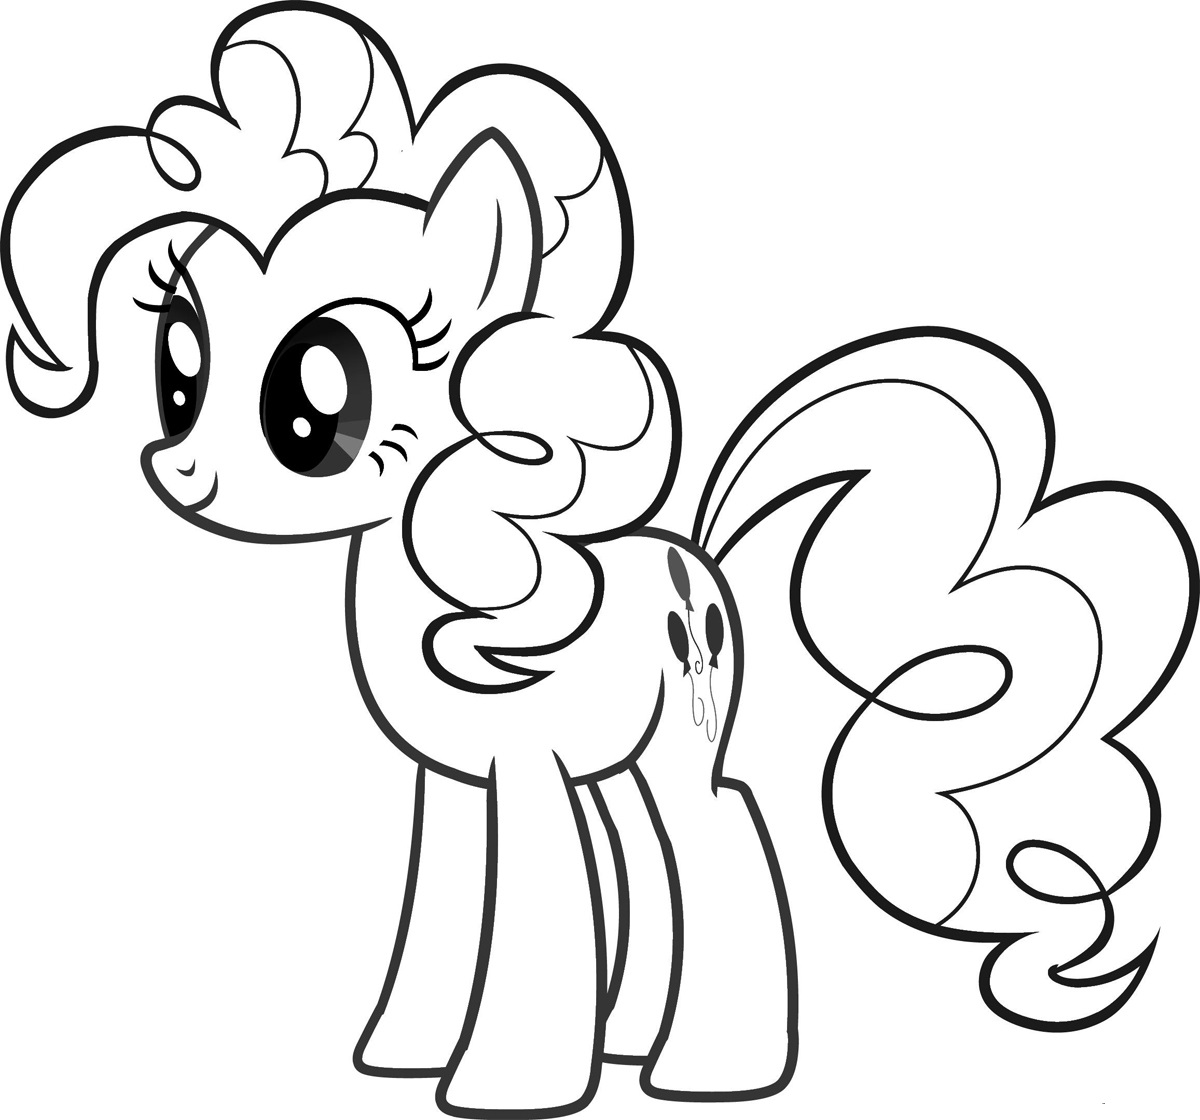 pie coloring page - pinkie pie pony coloring pages for girls to print for free